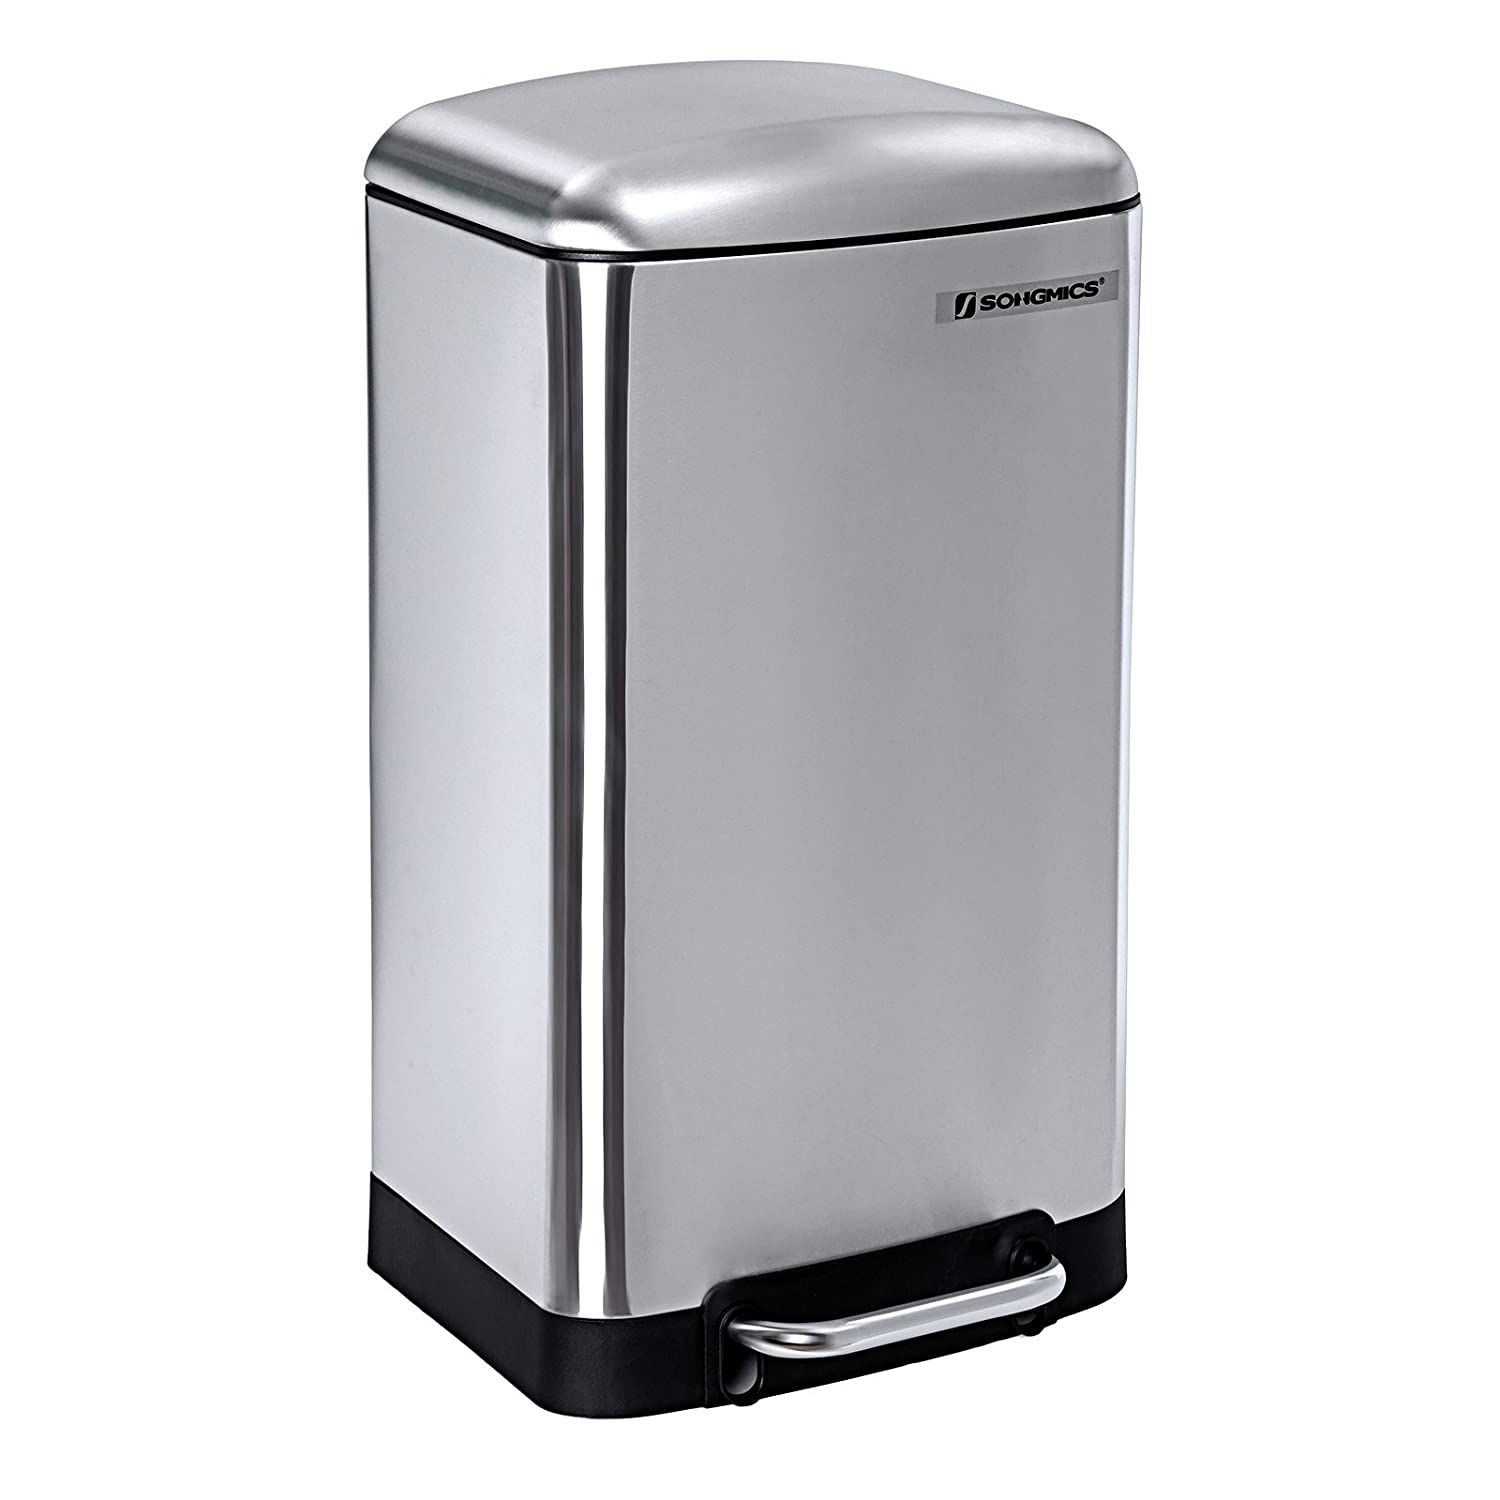 SONGMICS Pedal Bin 30L Kitchen Dustbin Soft Close Lid Stainless Steel Non-slip base LTB01L